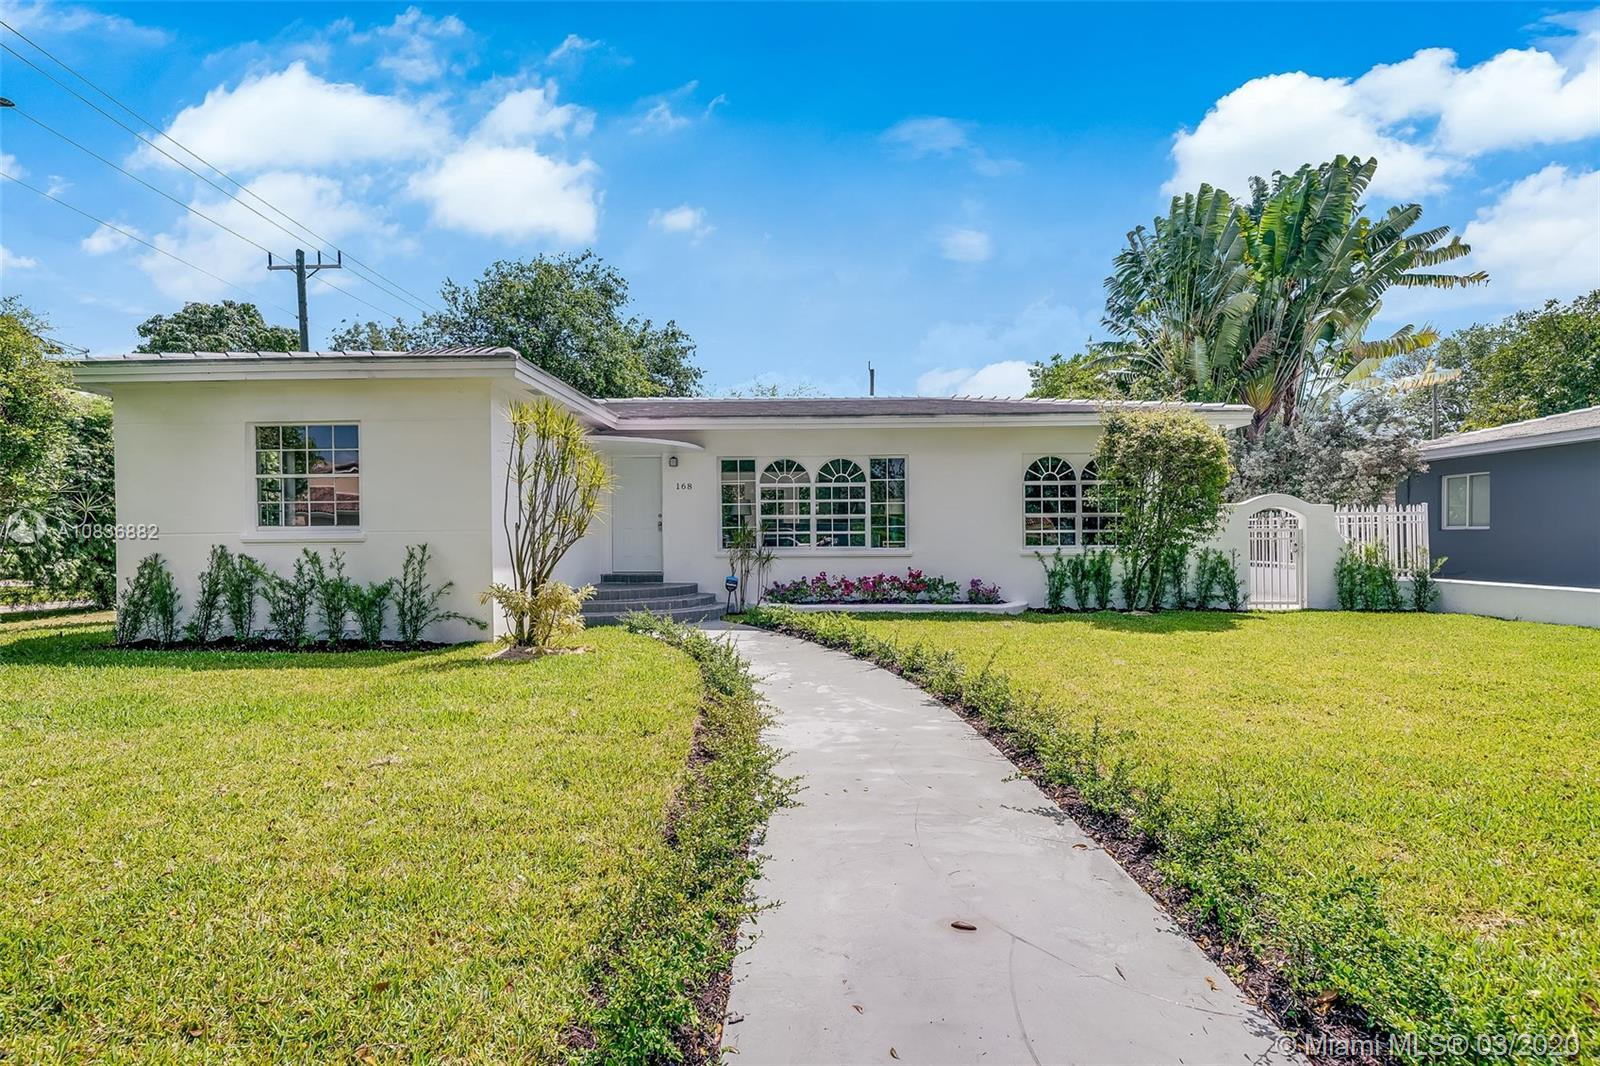 UPDATES THROUGHOUT! Stunning 4 bedroom 3 bathroom home in the heart of Miami Shores. The kitchen boa